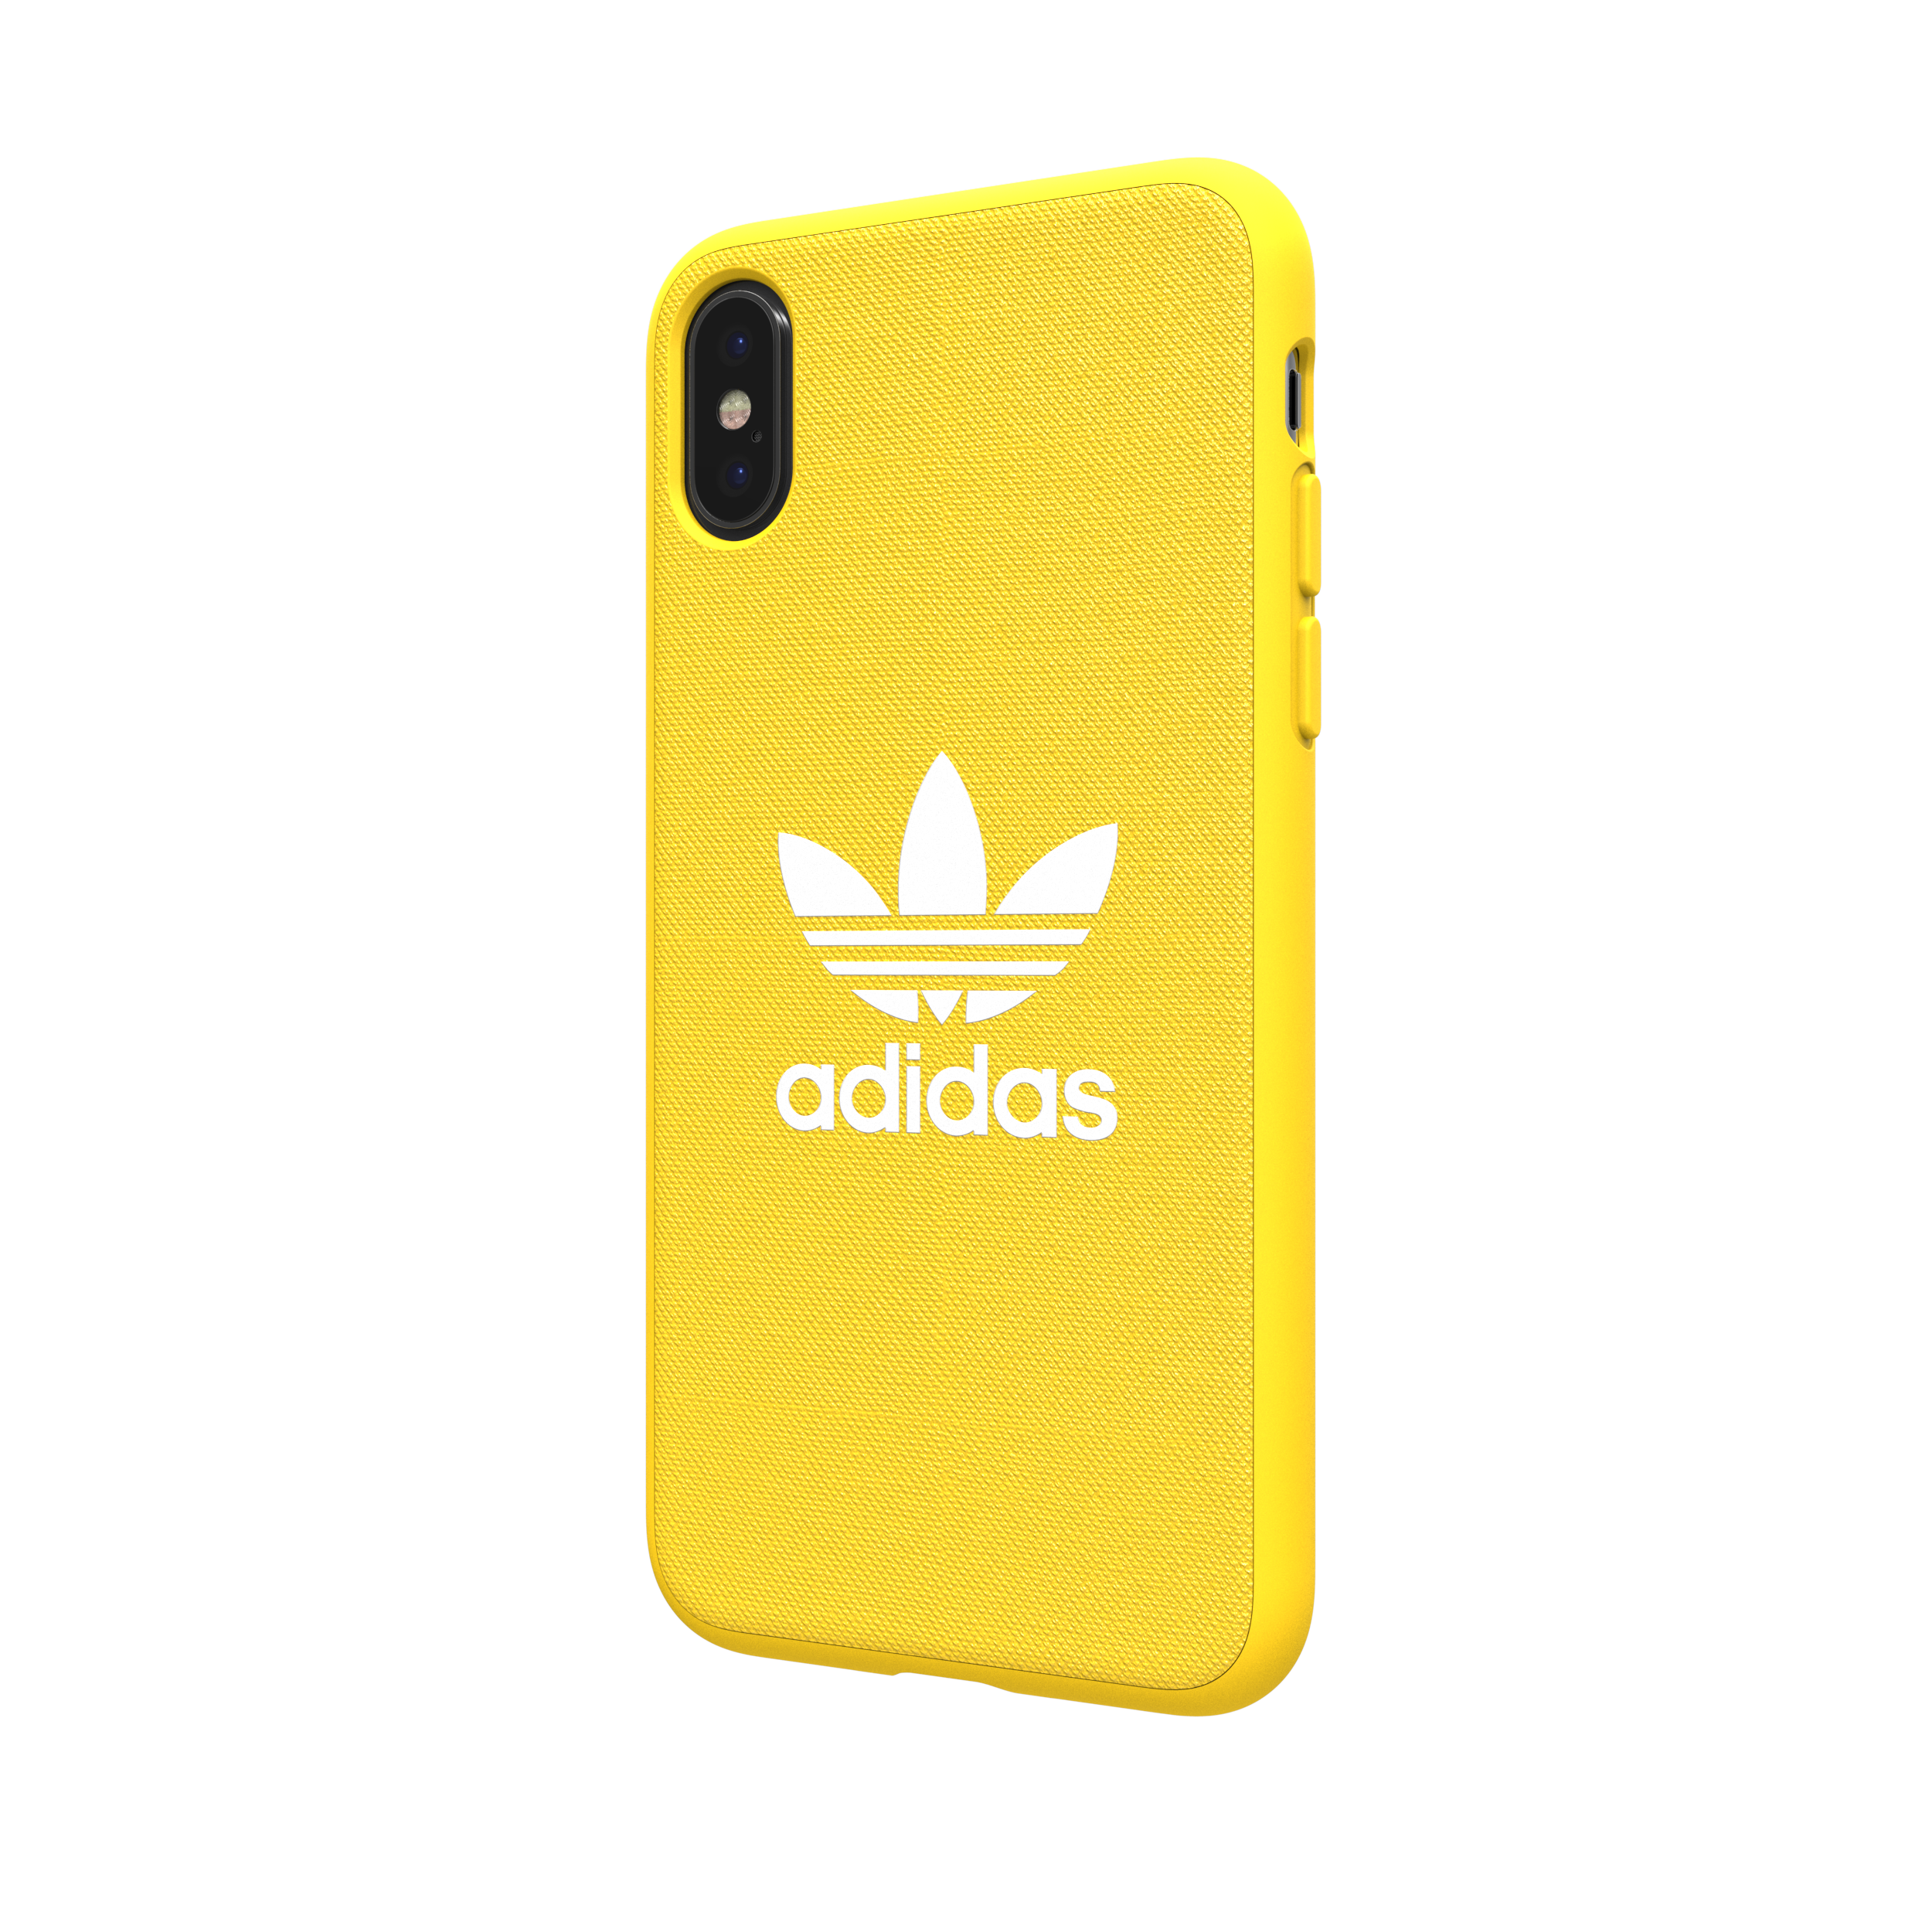 newest 42c80 0ea79 Details about Adidas Originals Adicolor Moulded Case / Cover for Apple  iPhone X - Yellow